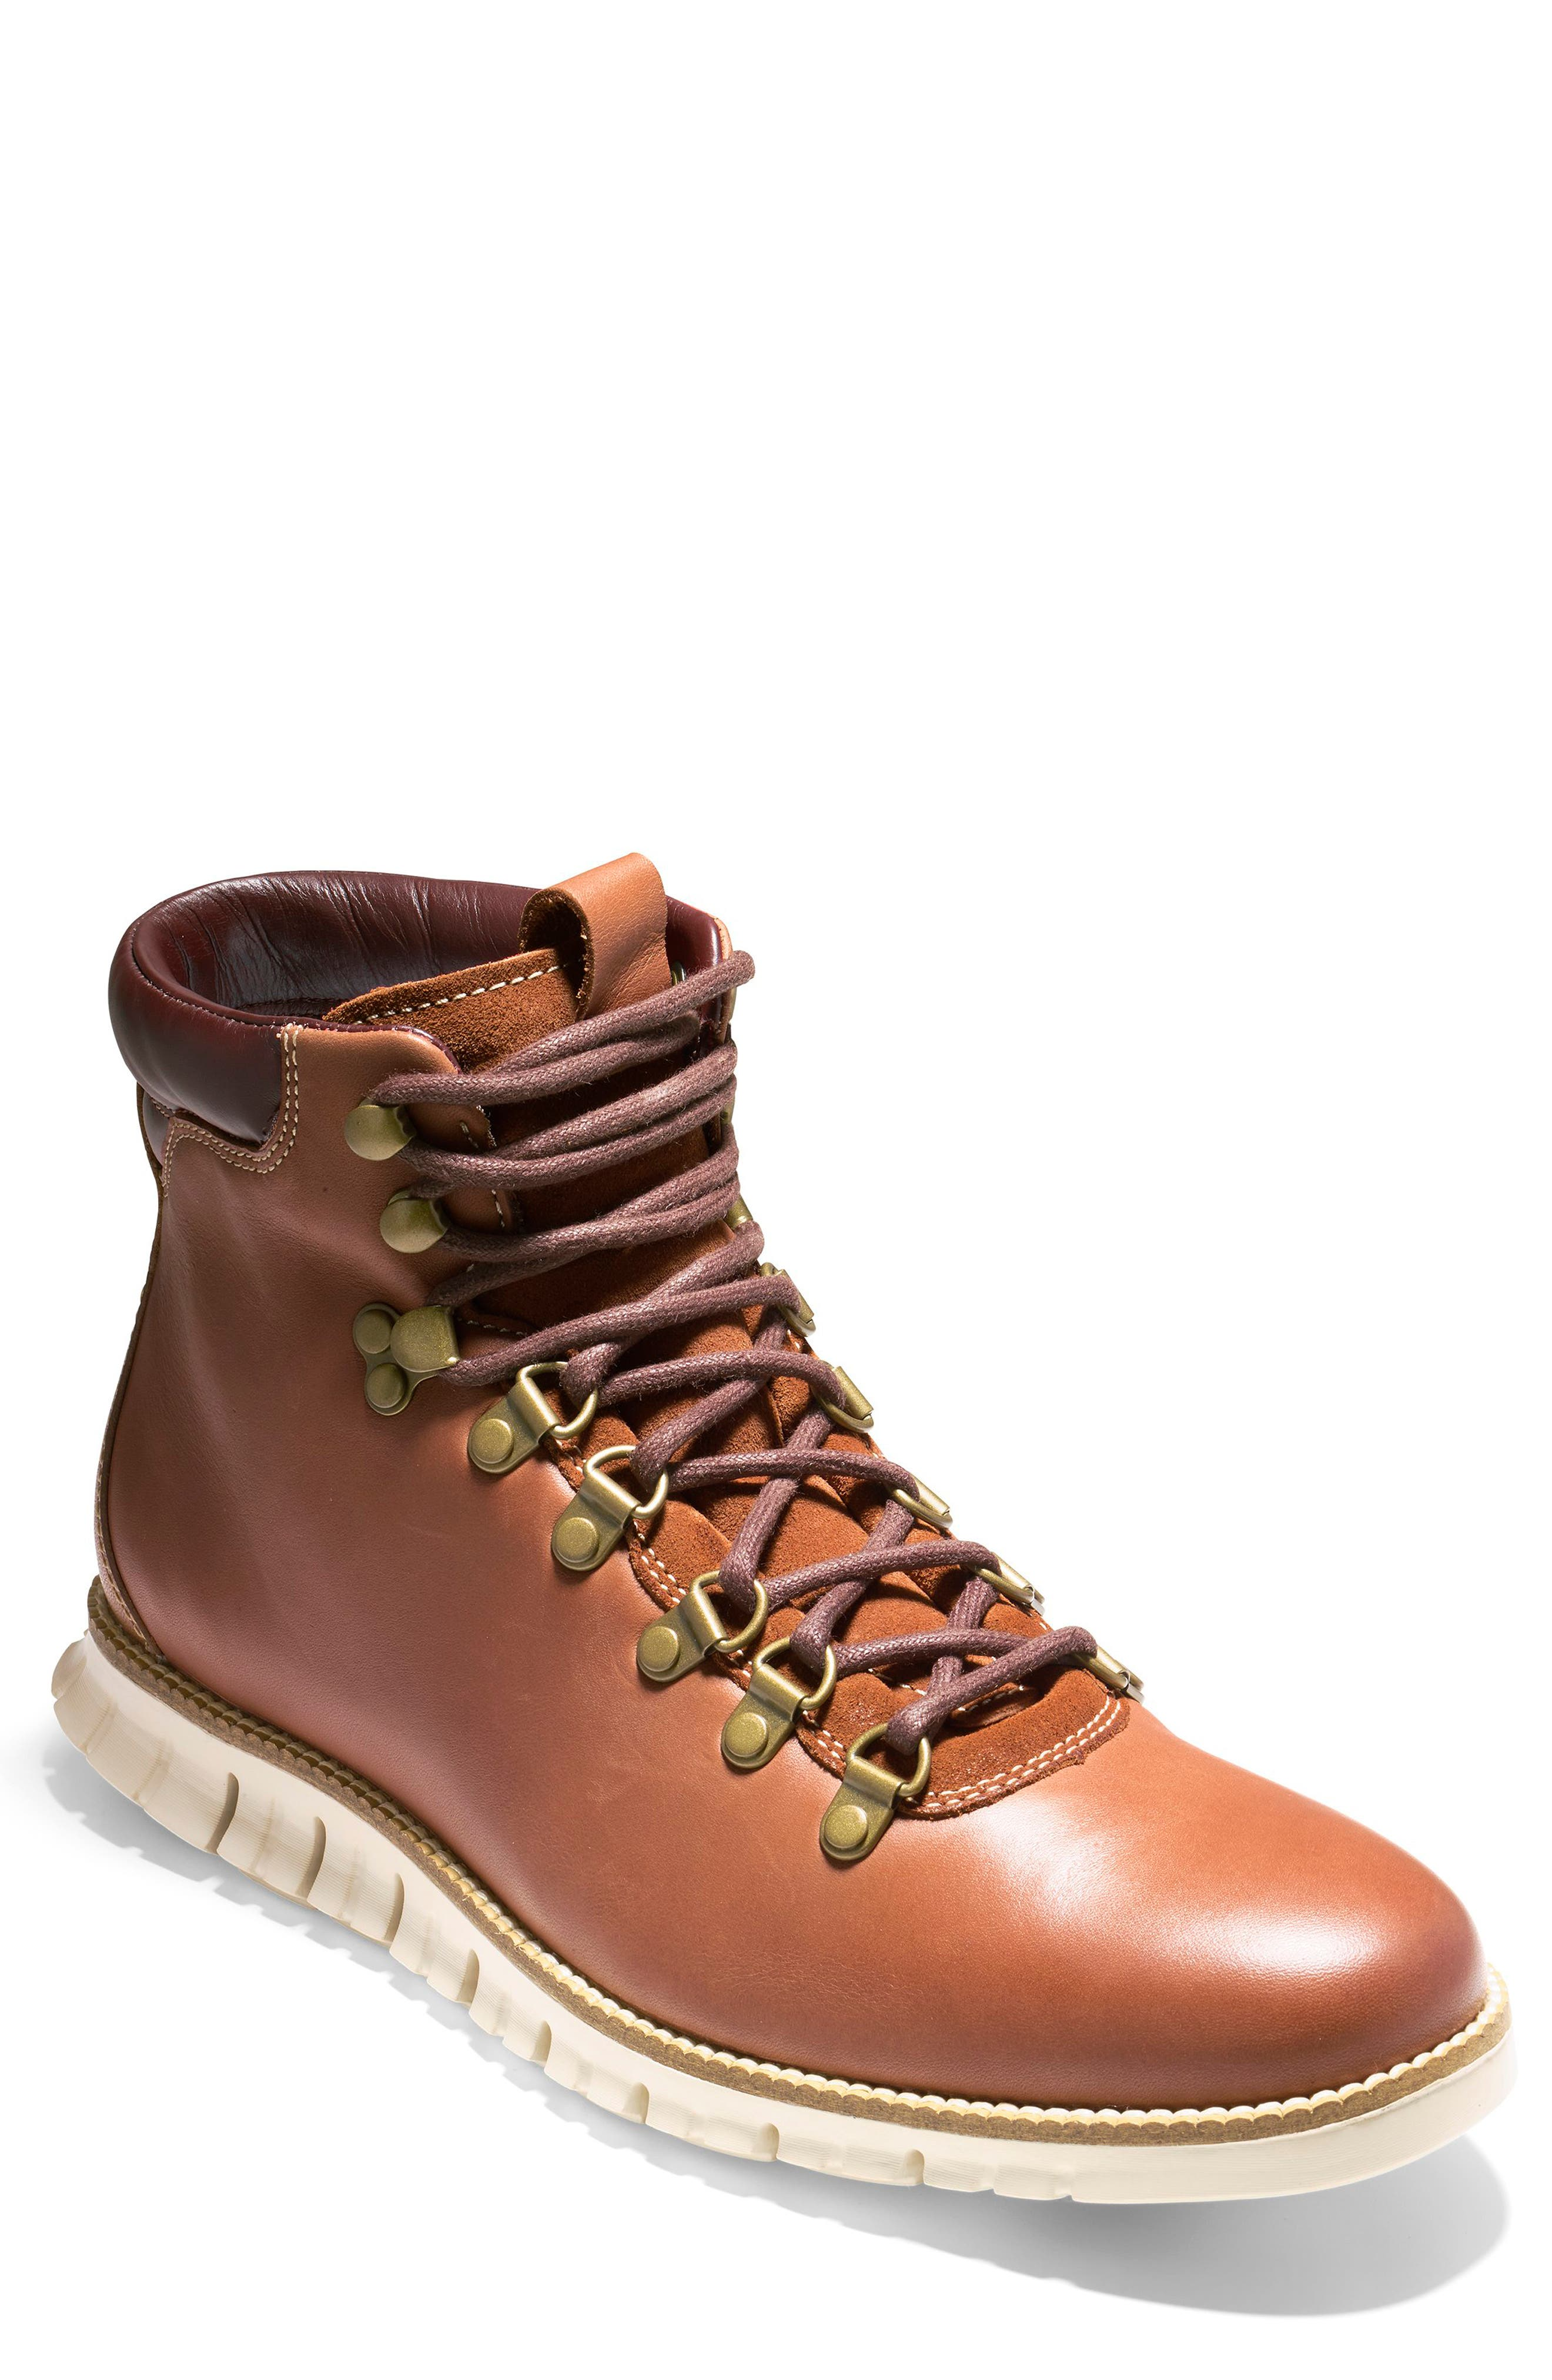 COLE HAAN, ZeroGrand Water Resistant Hiker Boot, Main thumbnail 1, color, WOODBURY / IVORY LEATHER